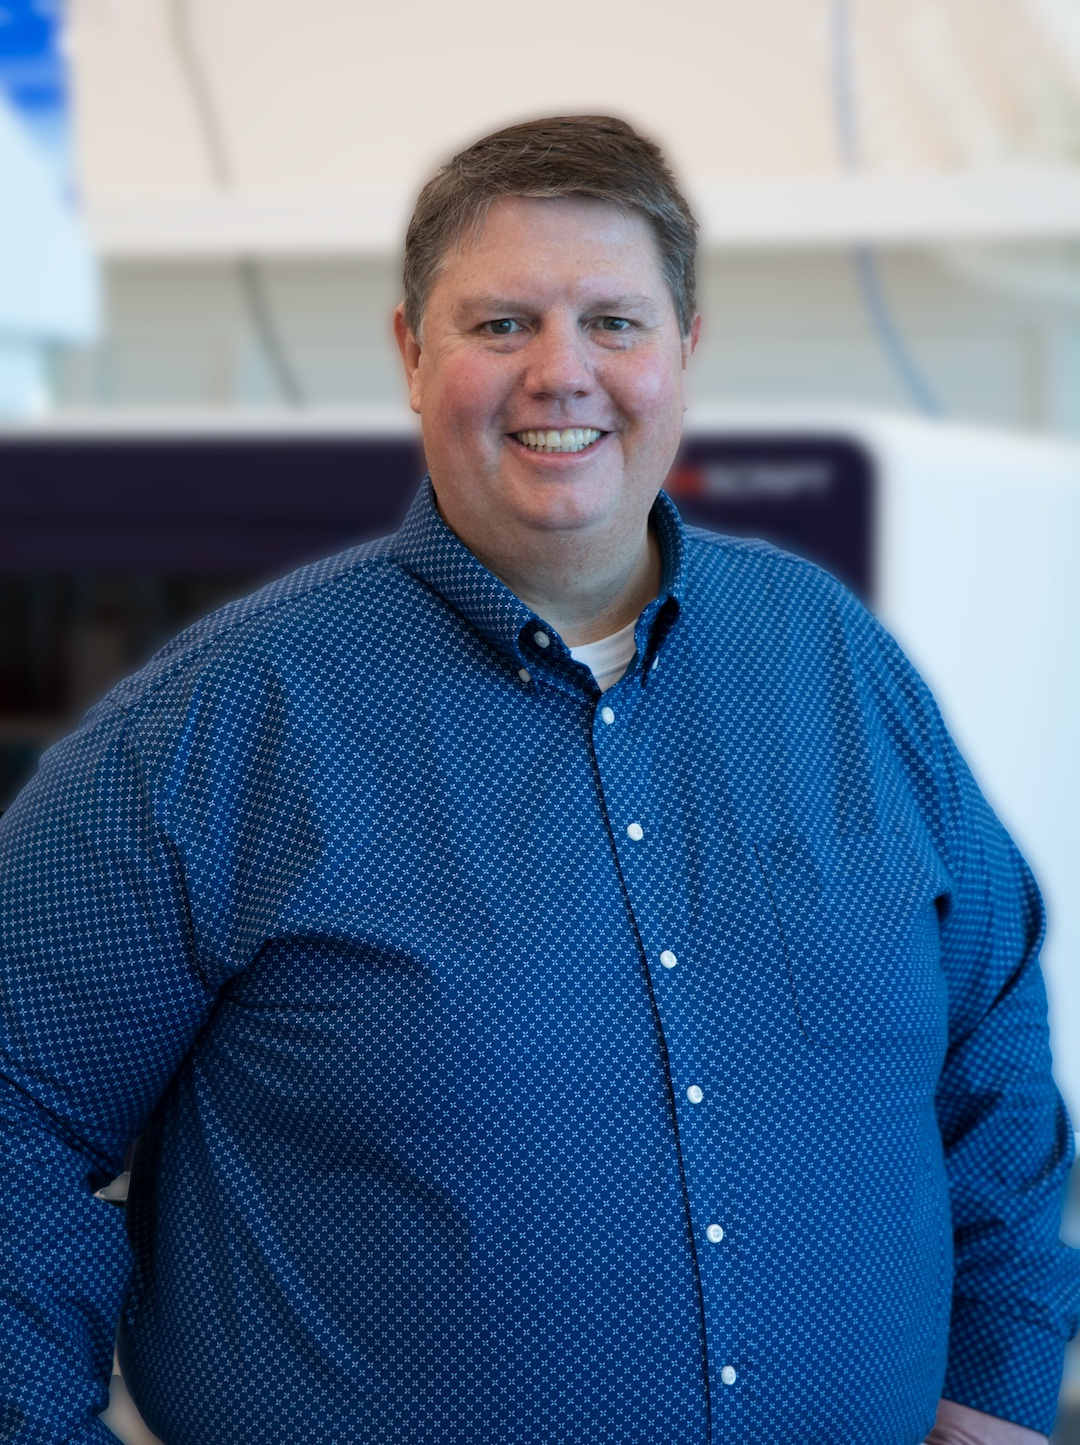 Head shot of Kevin Grossenbacher, Director, Product Development